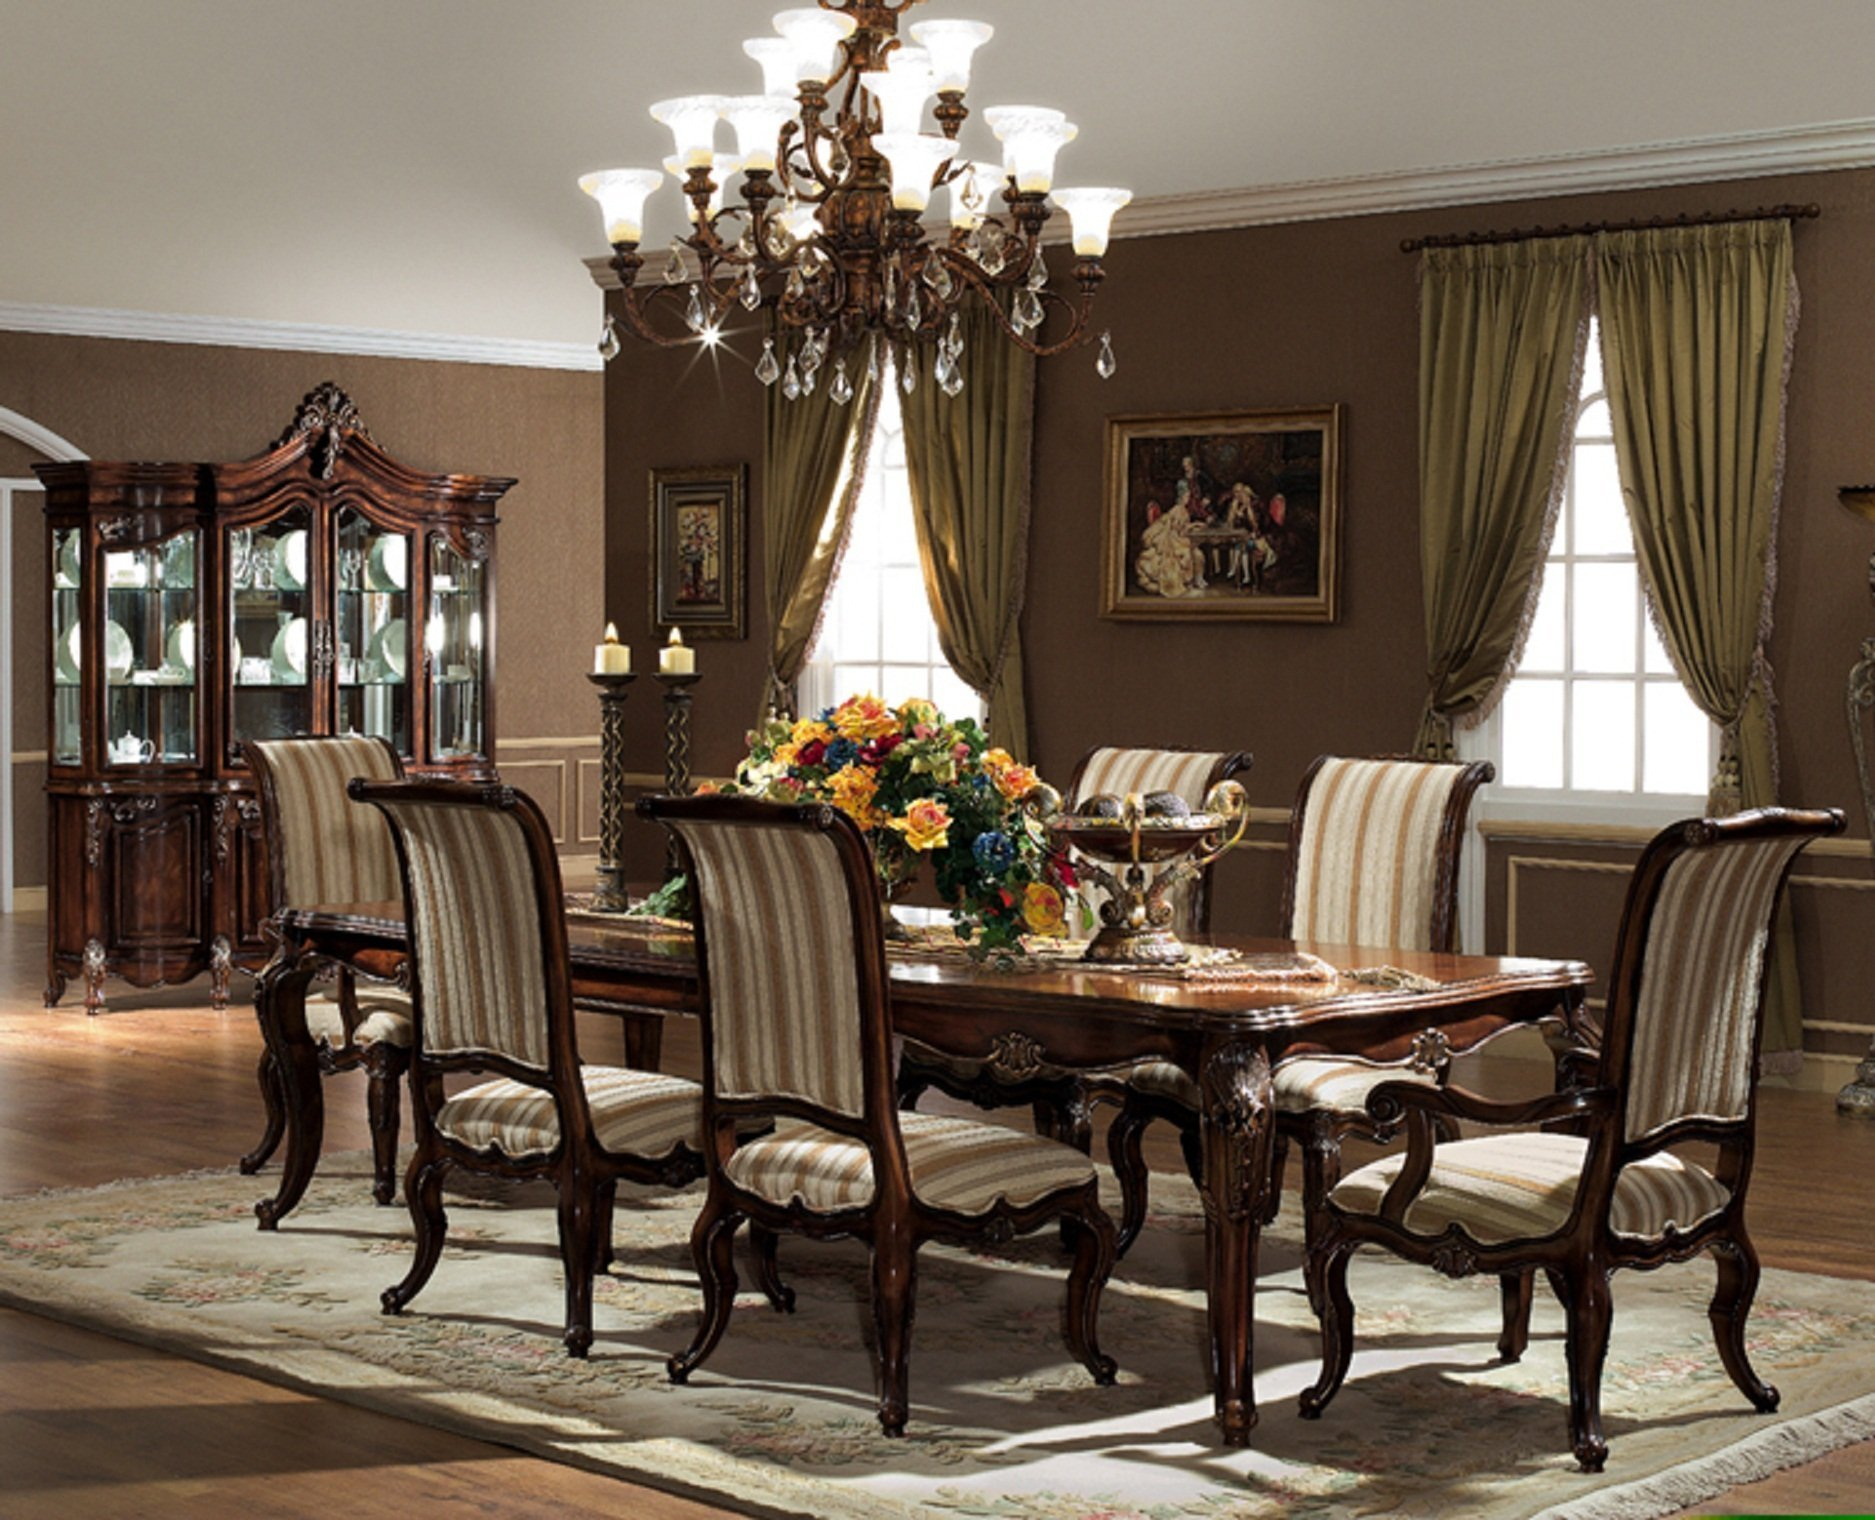 dining table and chair sets pub 4 chairs احدث غرف سفرة مودرن 2017 بمختلف الأشكال | ميكساتك